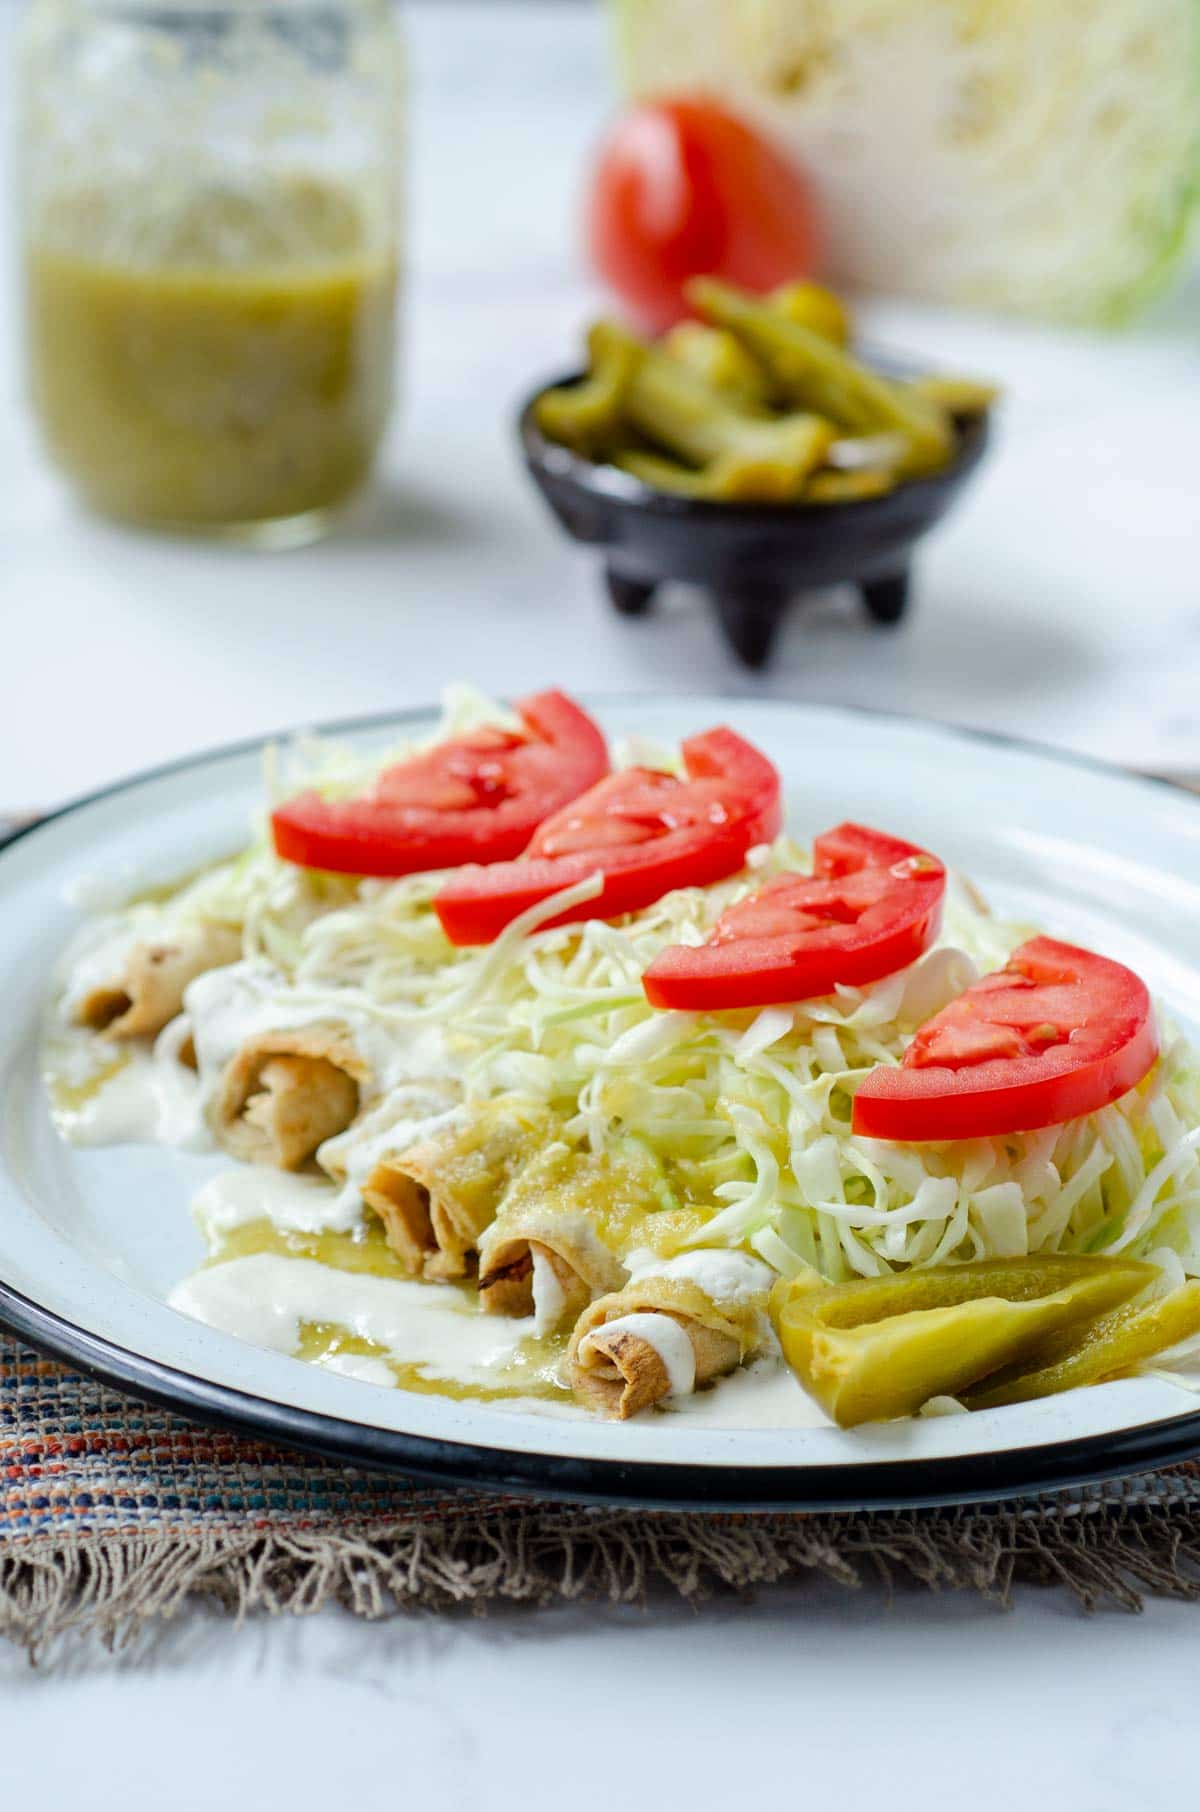 crispy rolled tacos topped with cabbage and tomatoes on a white plate